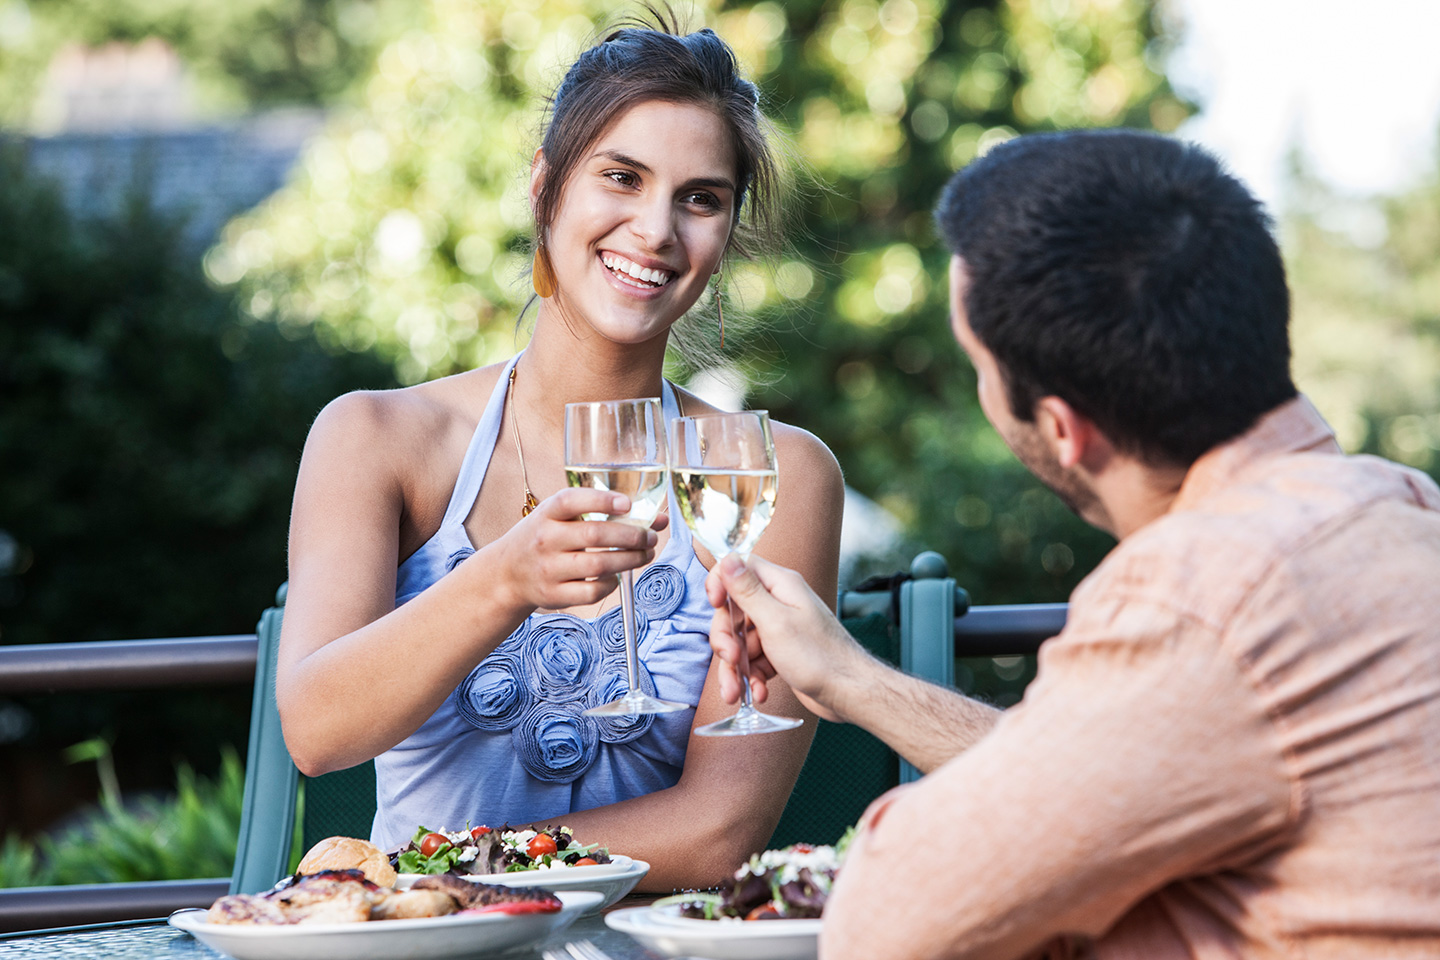 At-Home Quarantine Date Night Ideas – Social Distance & Have Fun!